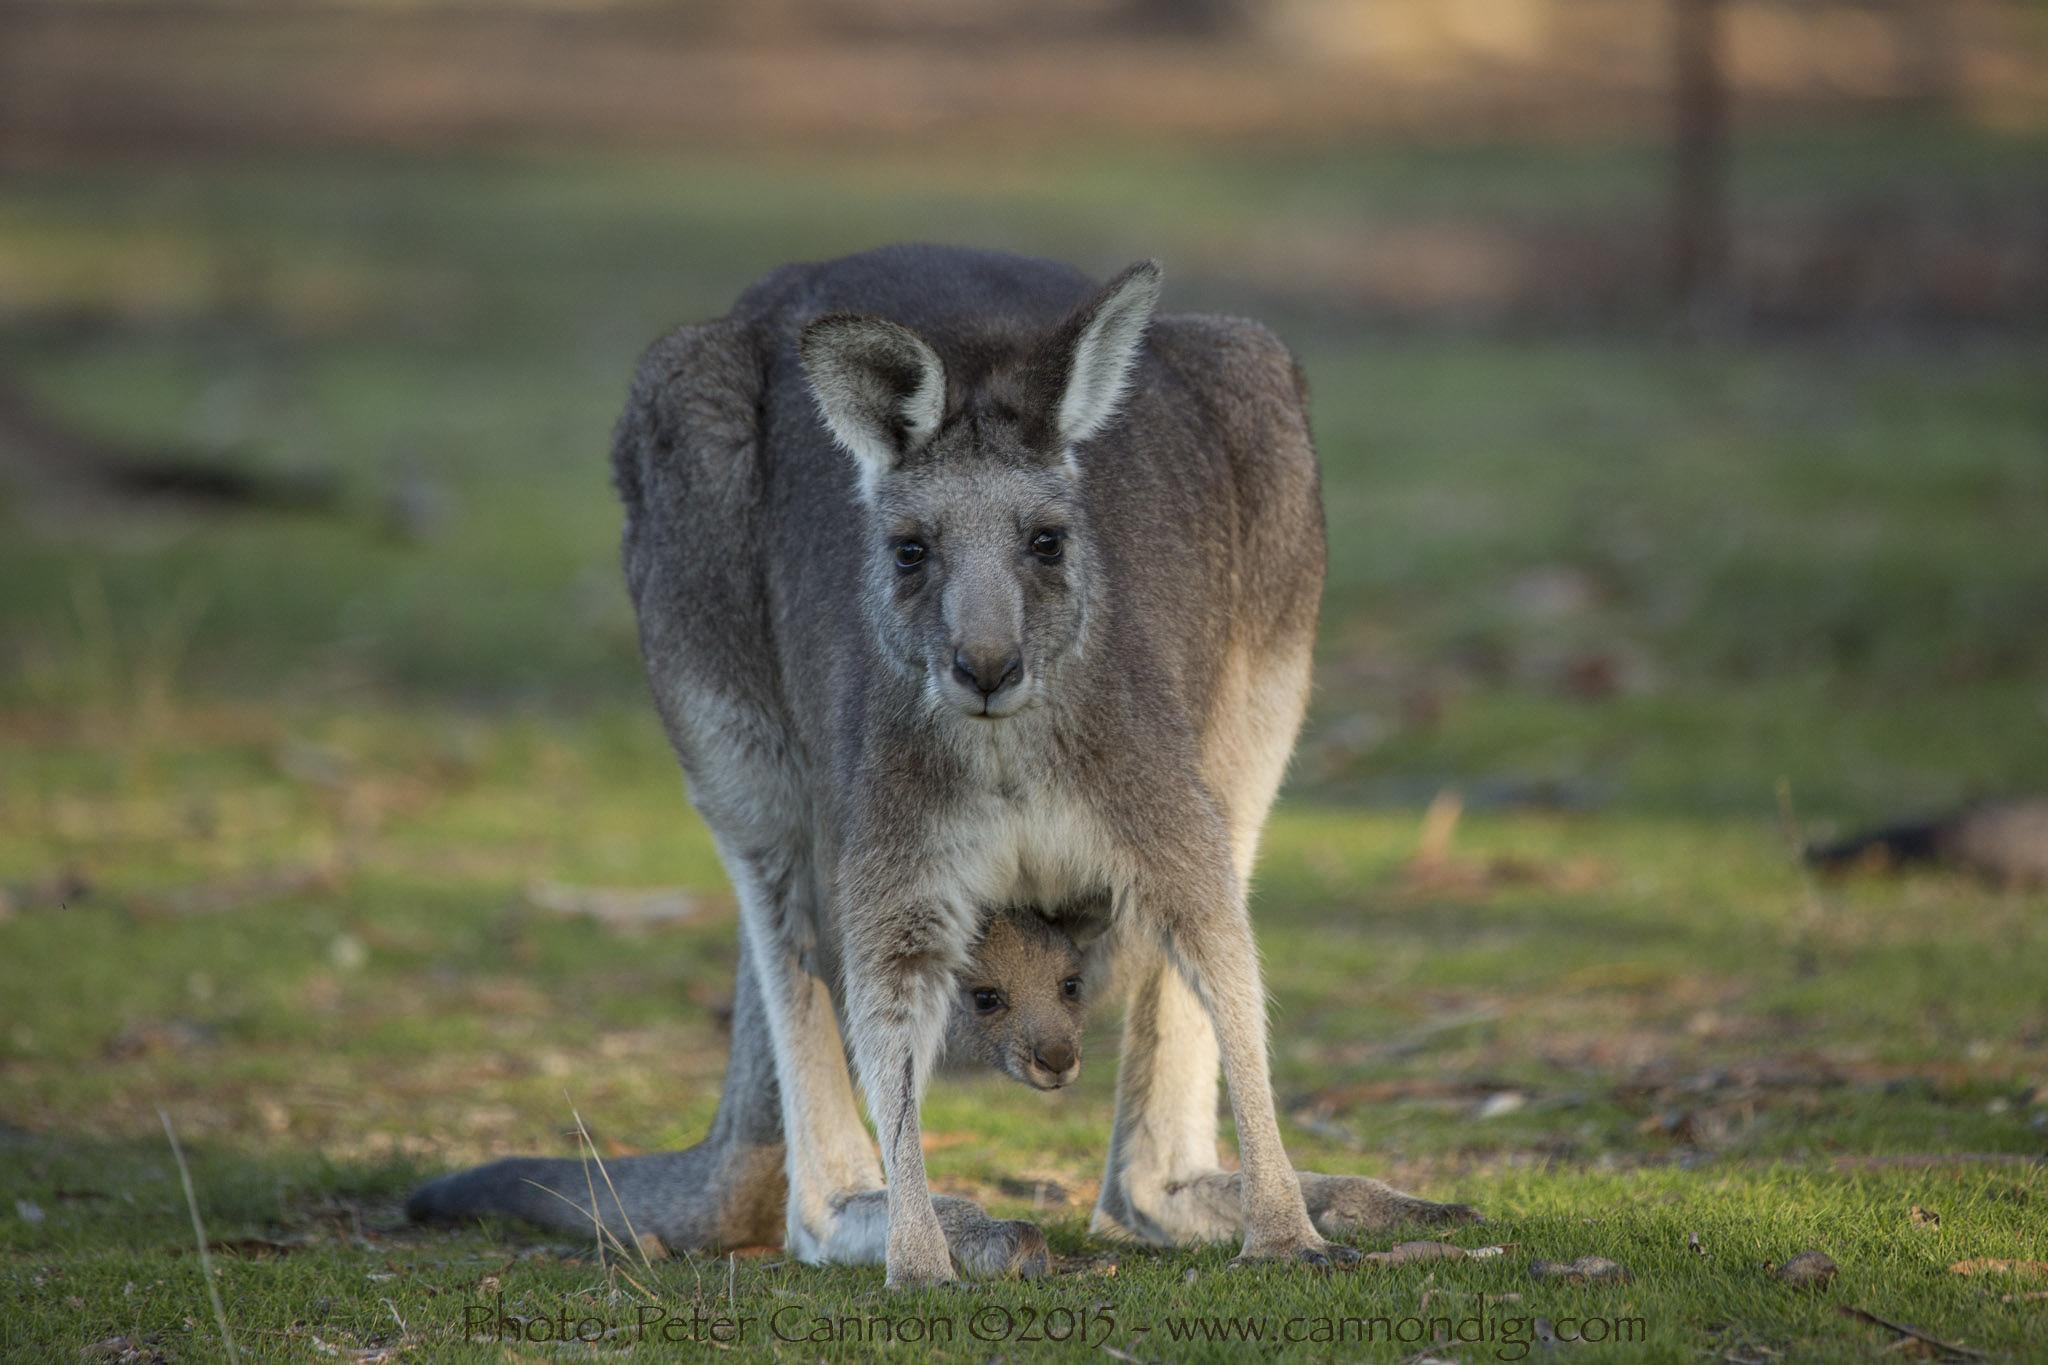 Mother and Baby by Peter Cannon